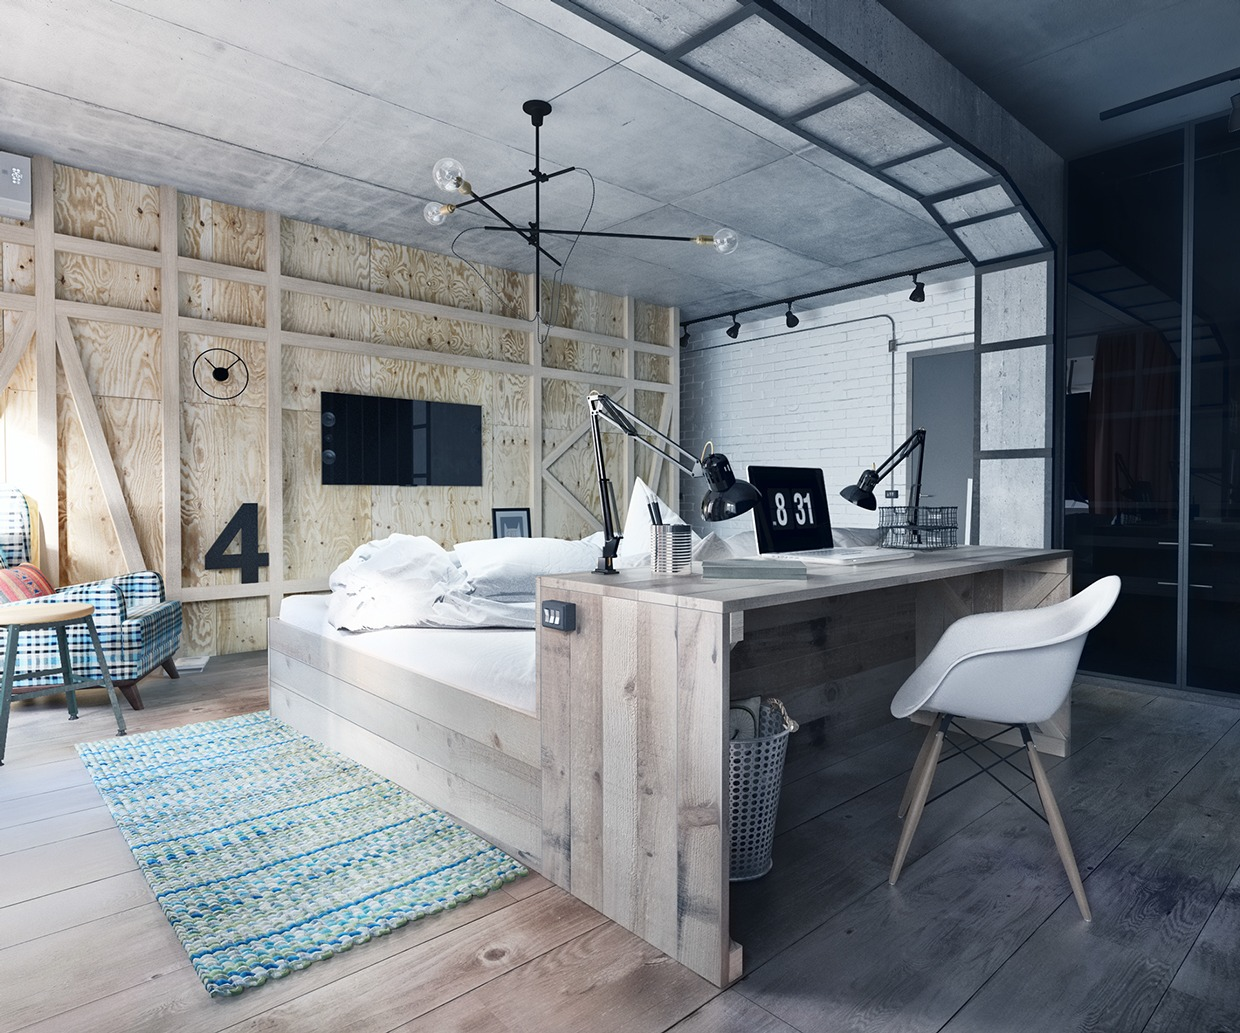 Palet Bed - 3 stylish industrial inspired loft interiors